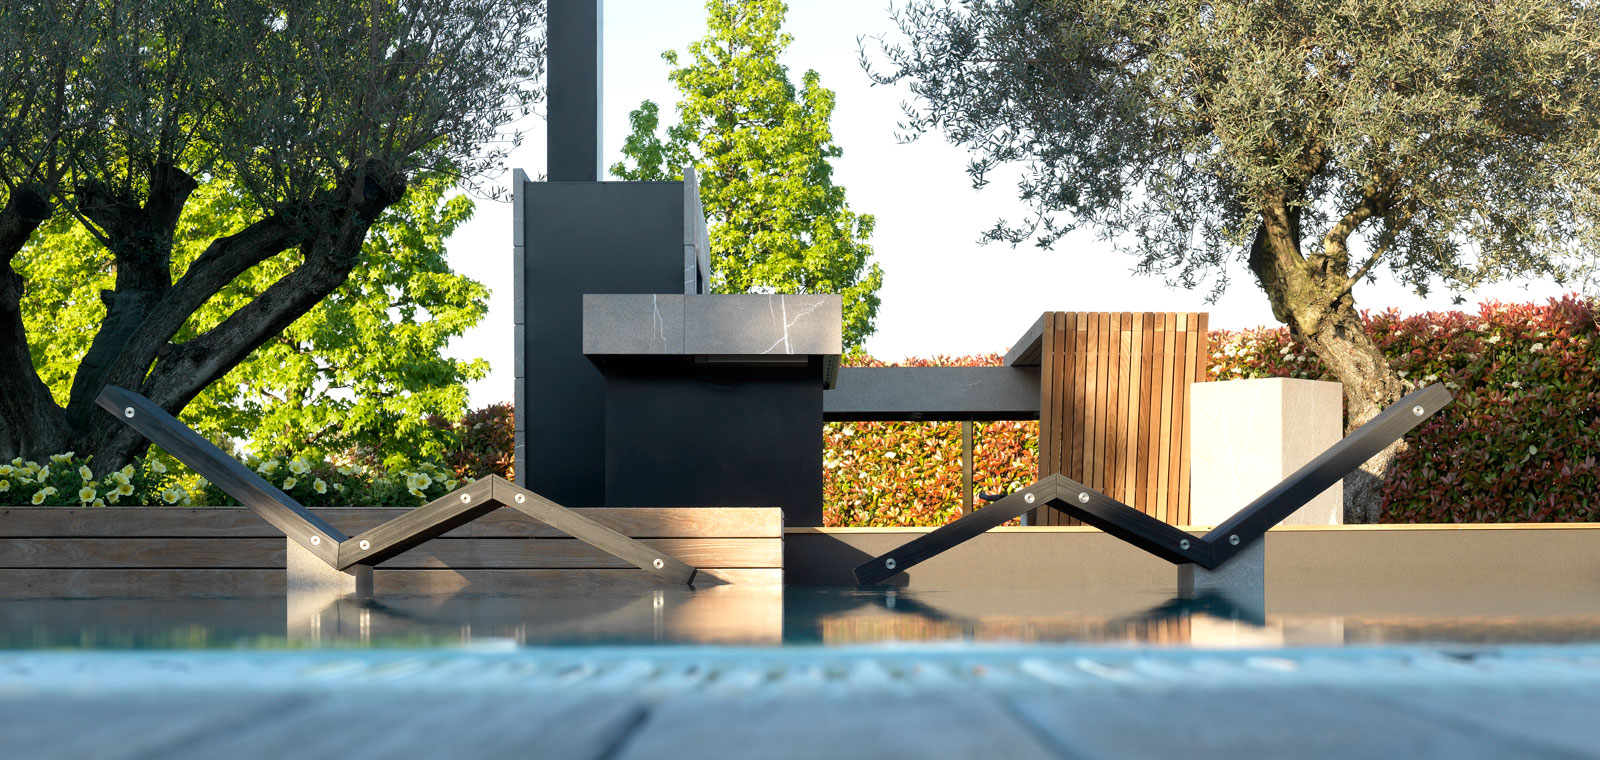 Bring The Inside Outside With The Modulnova Outdoor Kitchen 2